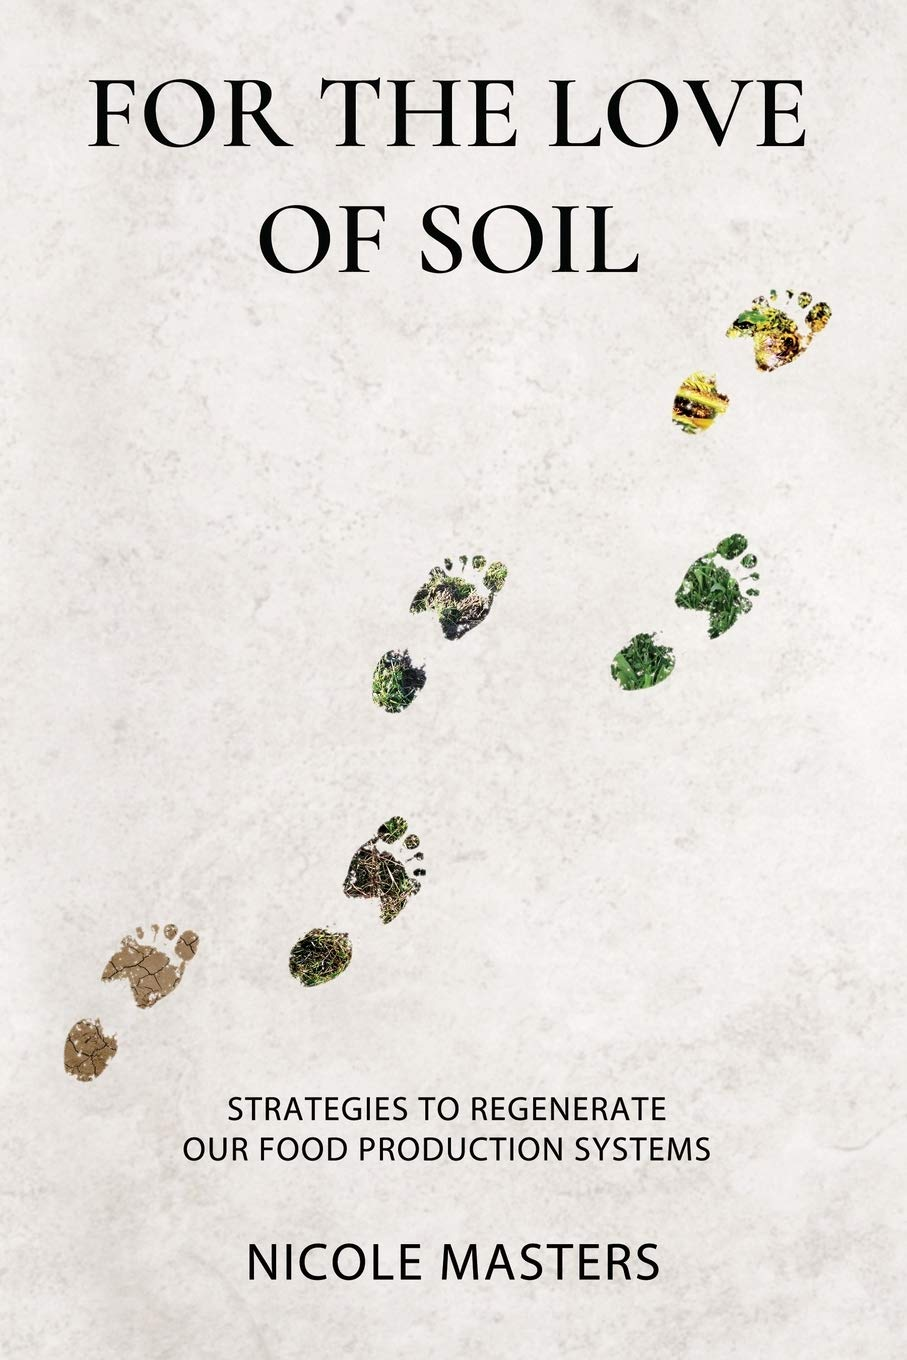 Image OfFor The Love Of Soil: Strategies To Regenerate Our Food Production Systems